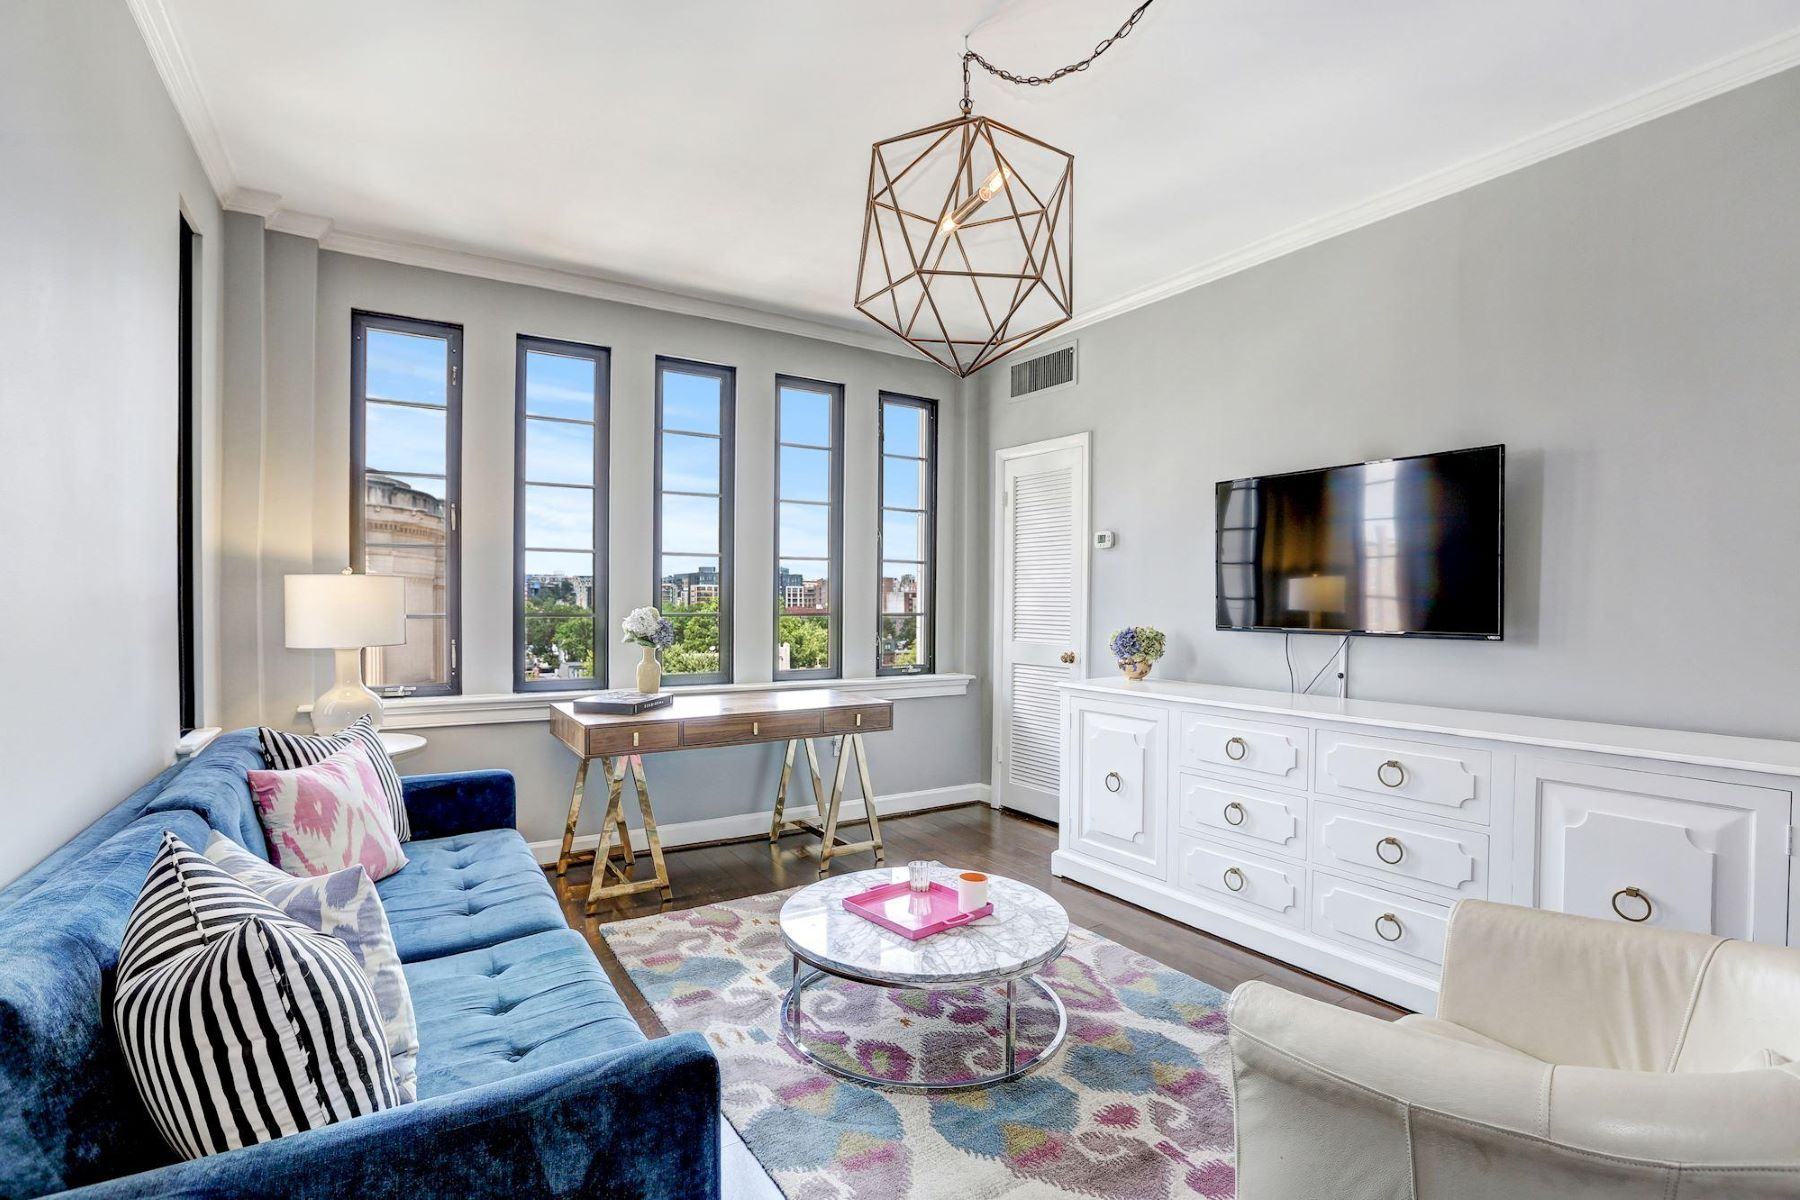 Property for Sale at 1701 16th St Nw #827 1701 16th St Nw #827 Washington, District Of Columbia 20009 United States